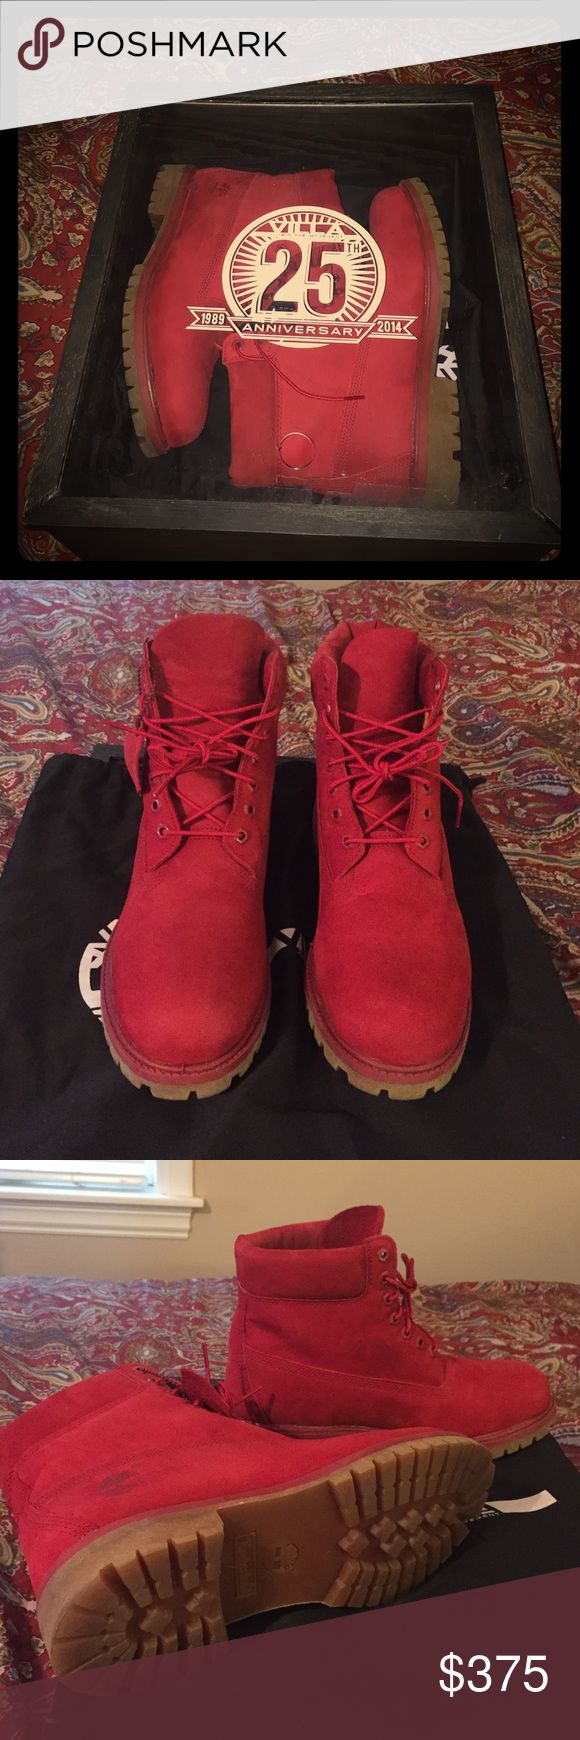 "Mens ruby red timberland boots size 11 RARE!! Mens timberland boot in red/mono Premium 6"" that dropped in 2015!! These boots are hot and we're sold old immediately! I only tried these boots on never wore them once check the pictures!! These are gems i will sit on them until I get the right price i want. If you can buy for cheaper in size 11 on different site please do! But you won't find them brand new for this price with receipt/ proof of purchase !! Timberland Shoes Boots"